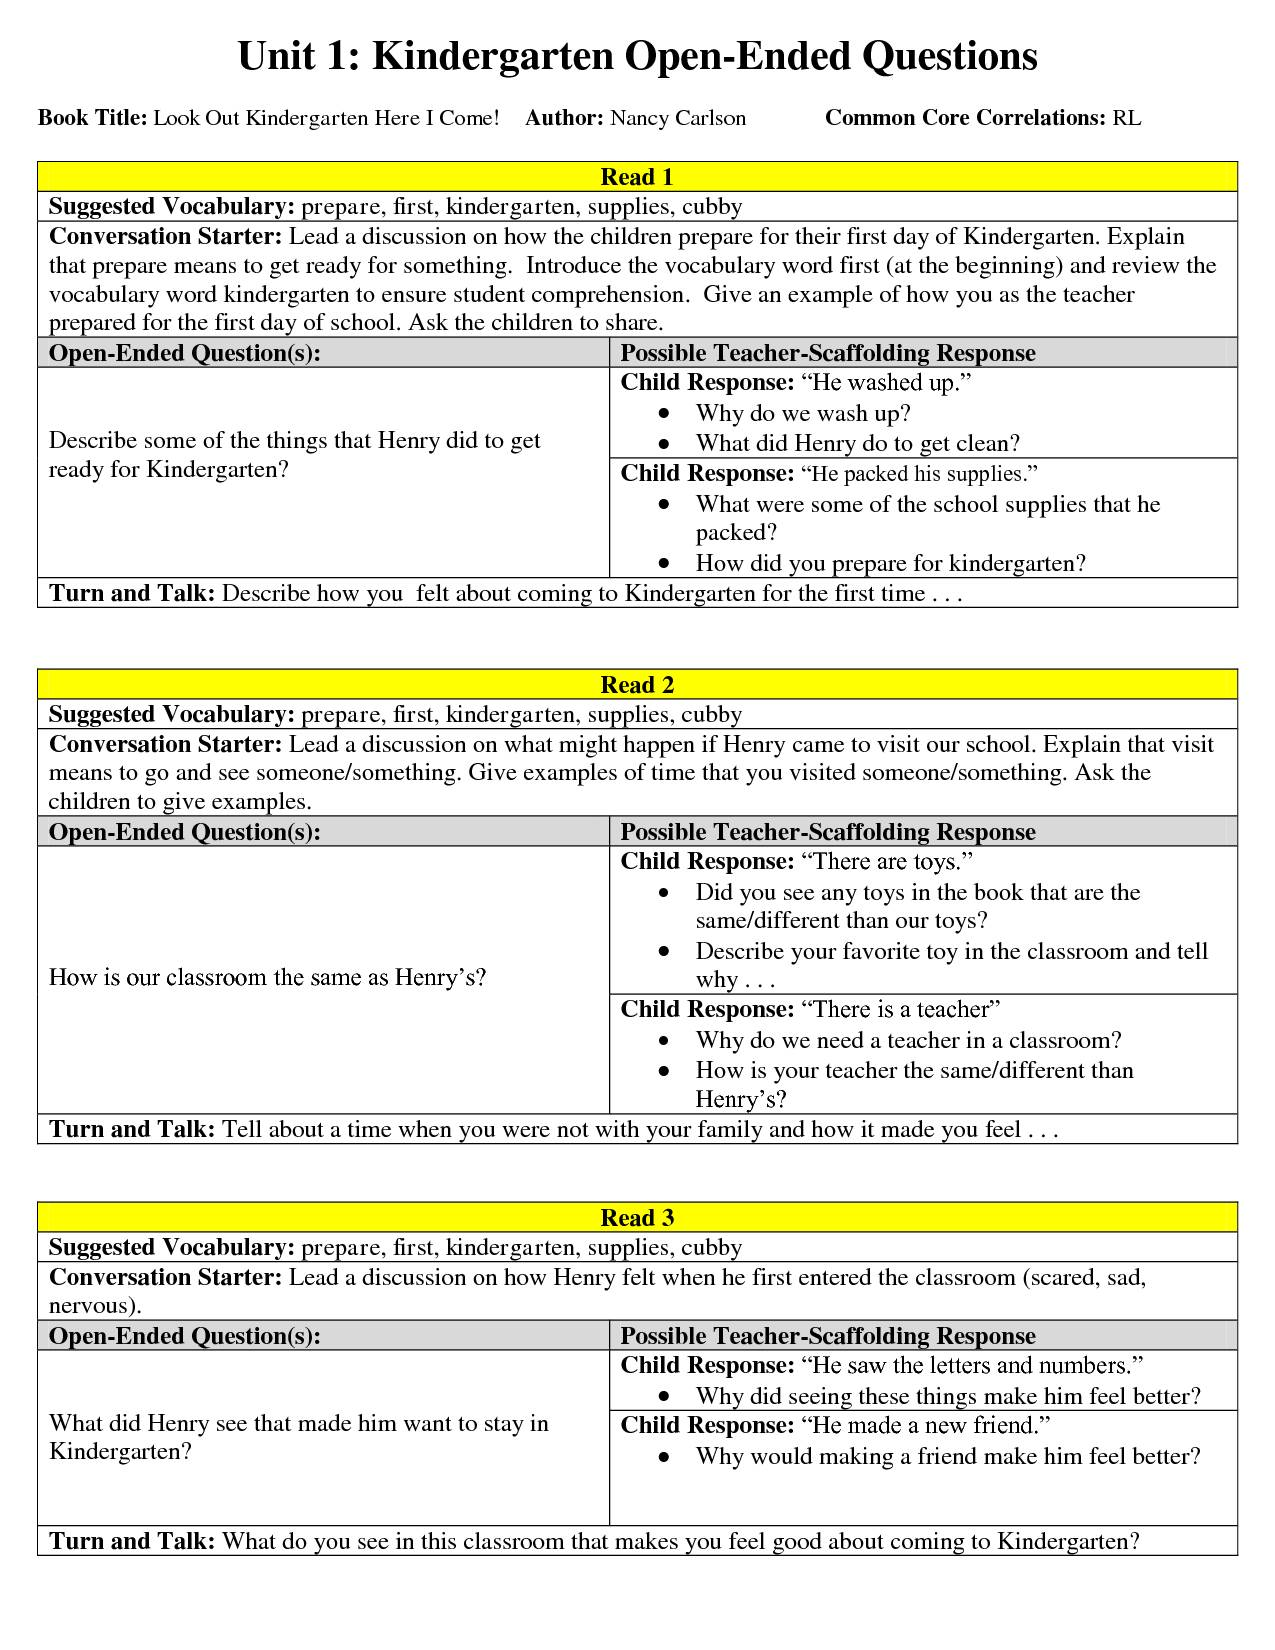 Kindergarten Lesson Plan Template For Common Core